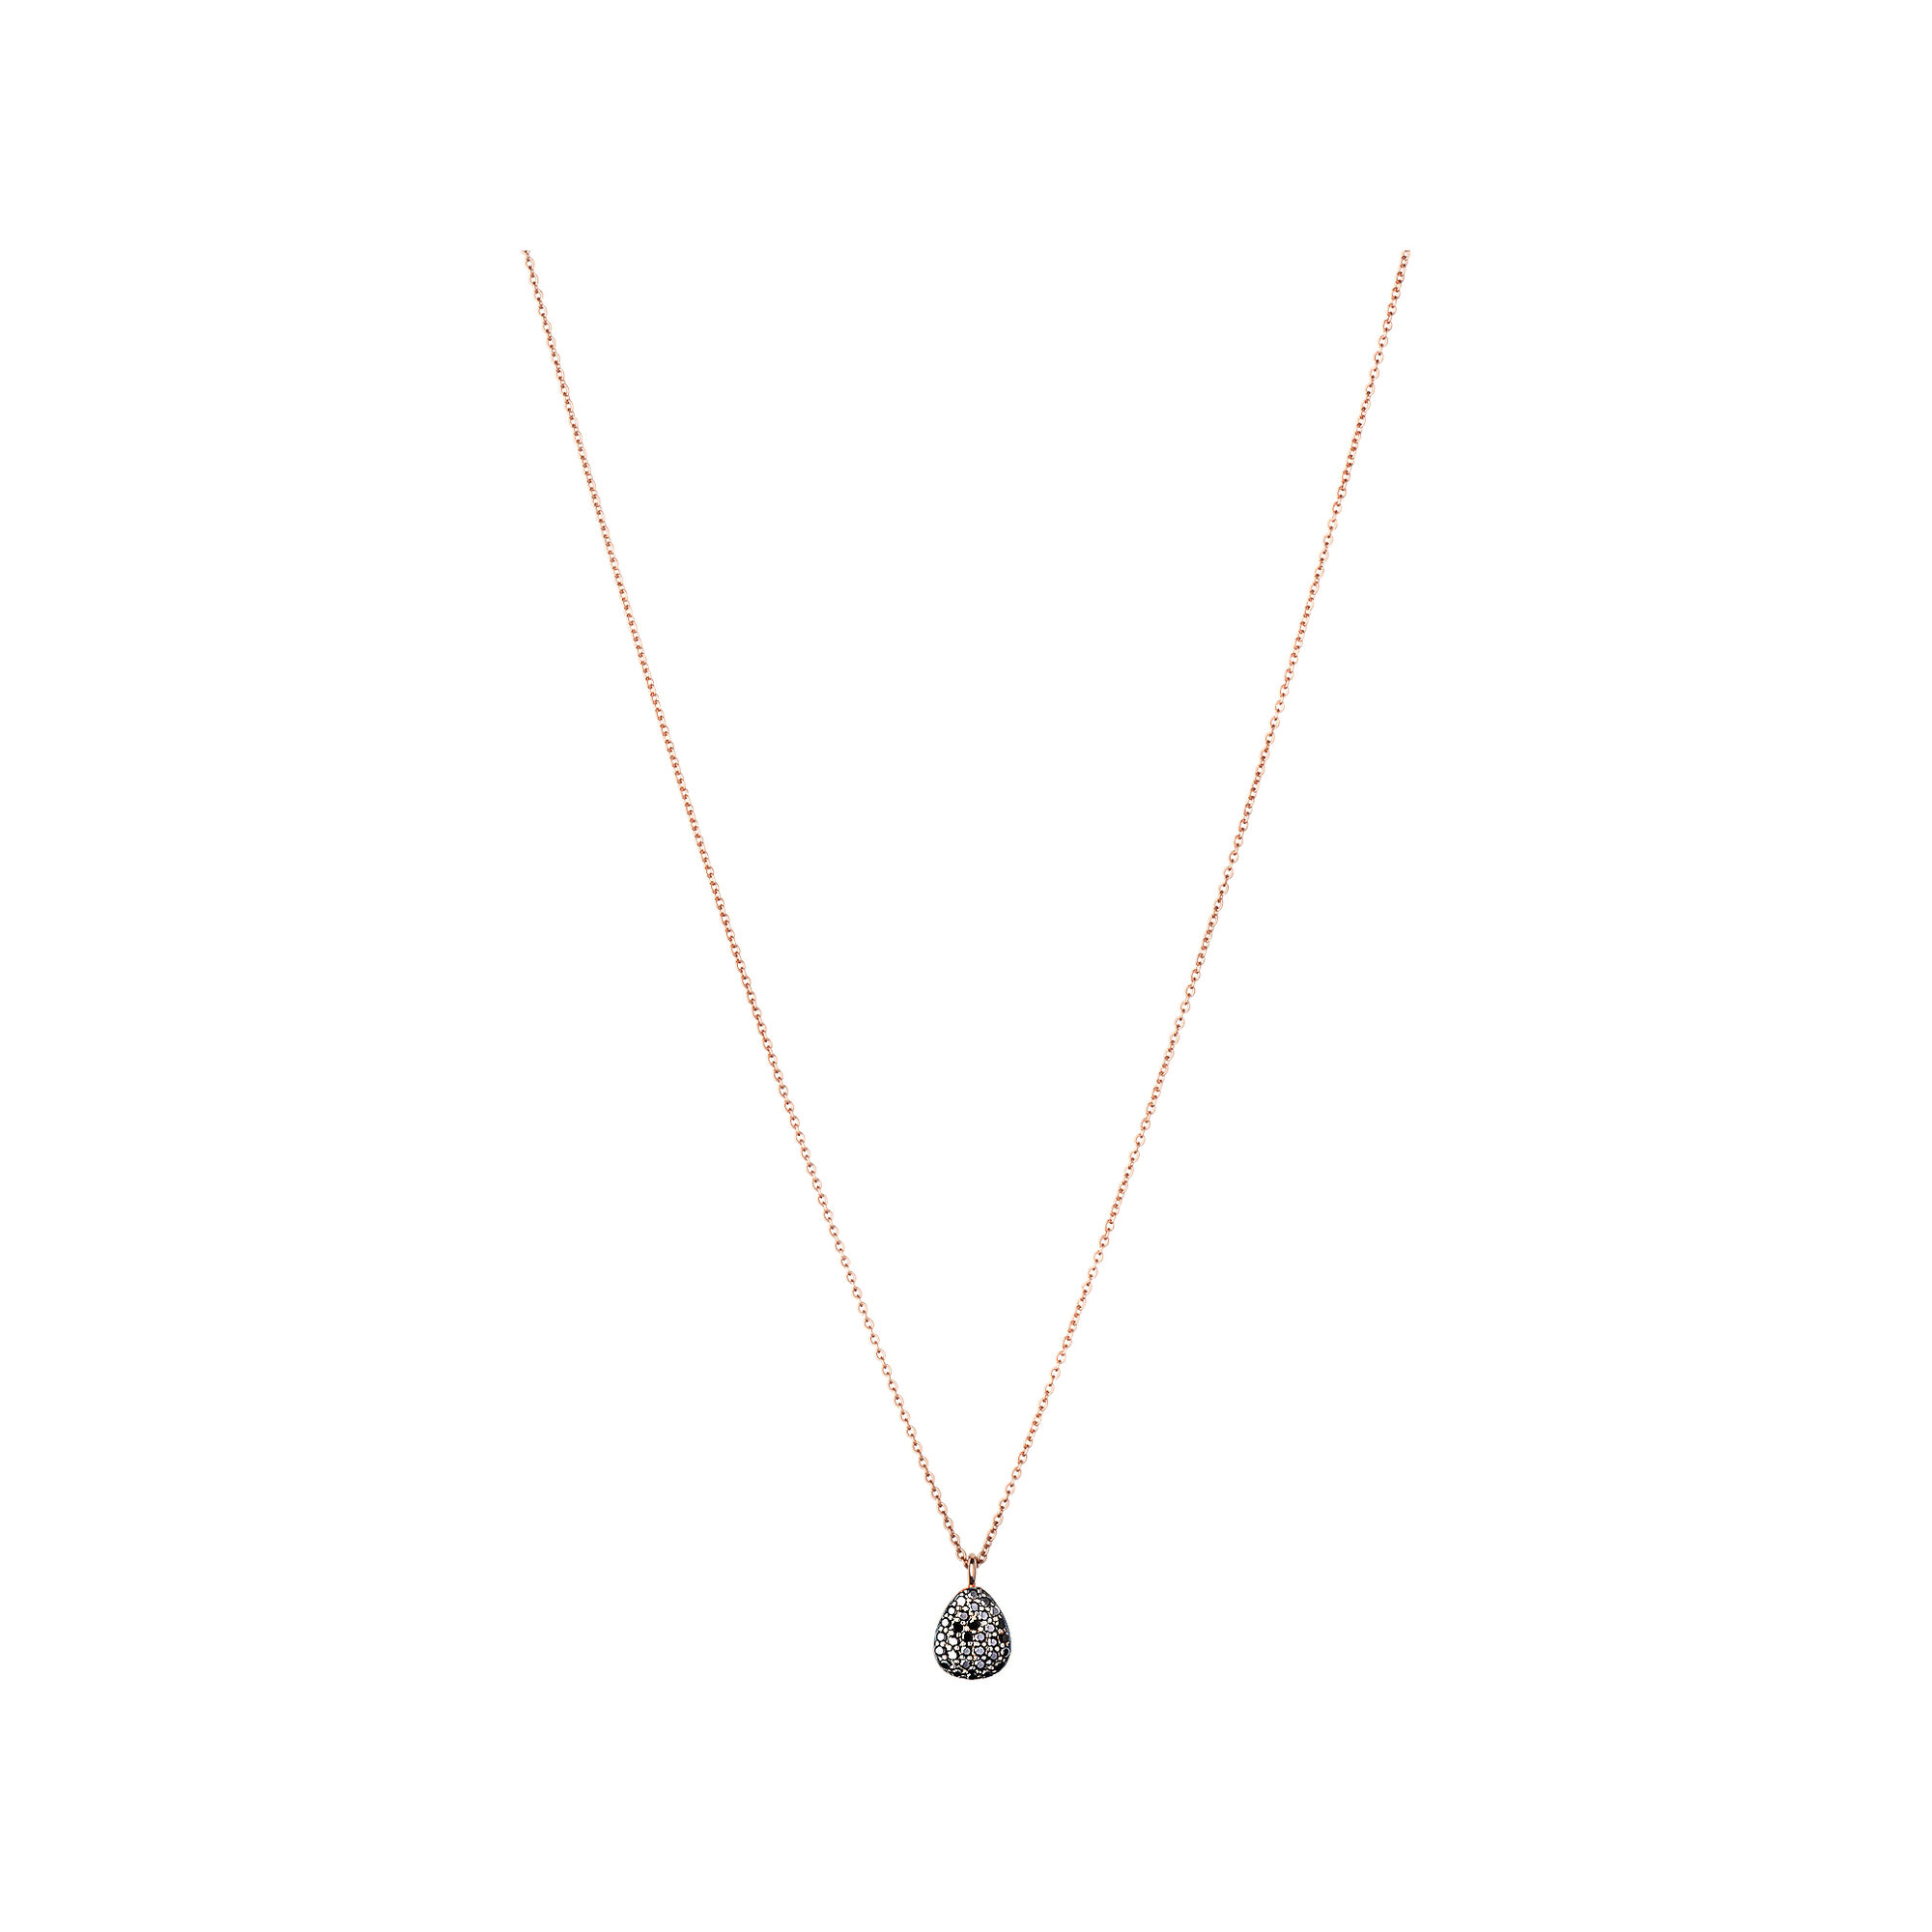 joy rebecca products dana pendant diamond mini necklace stone black and strand lauren still